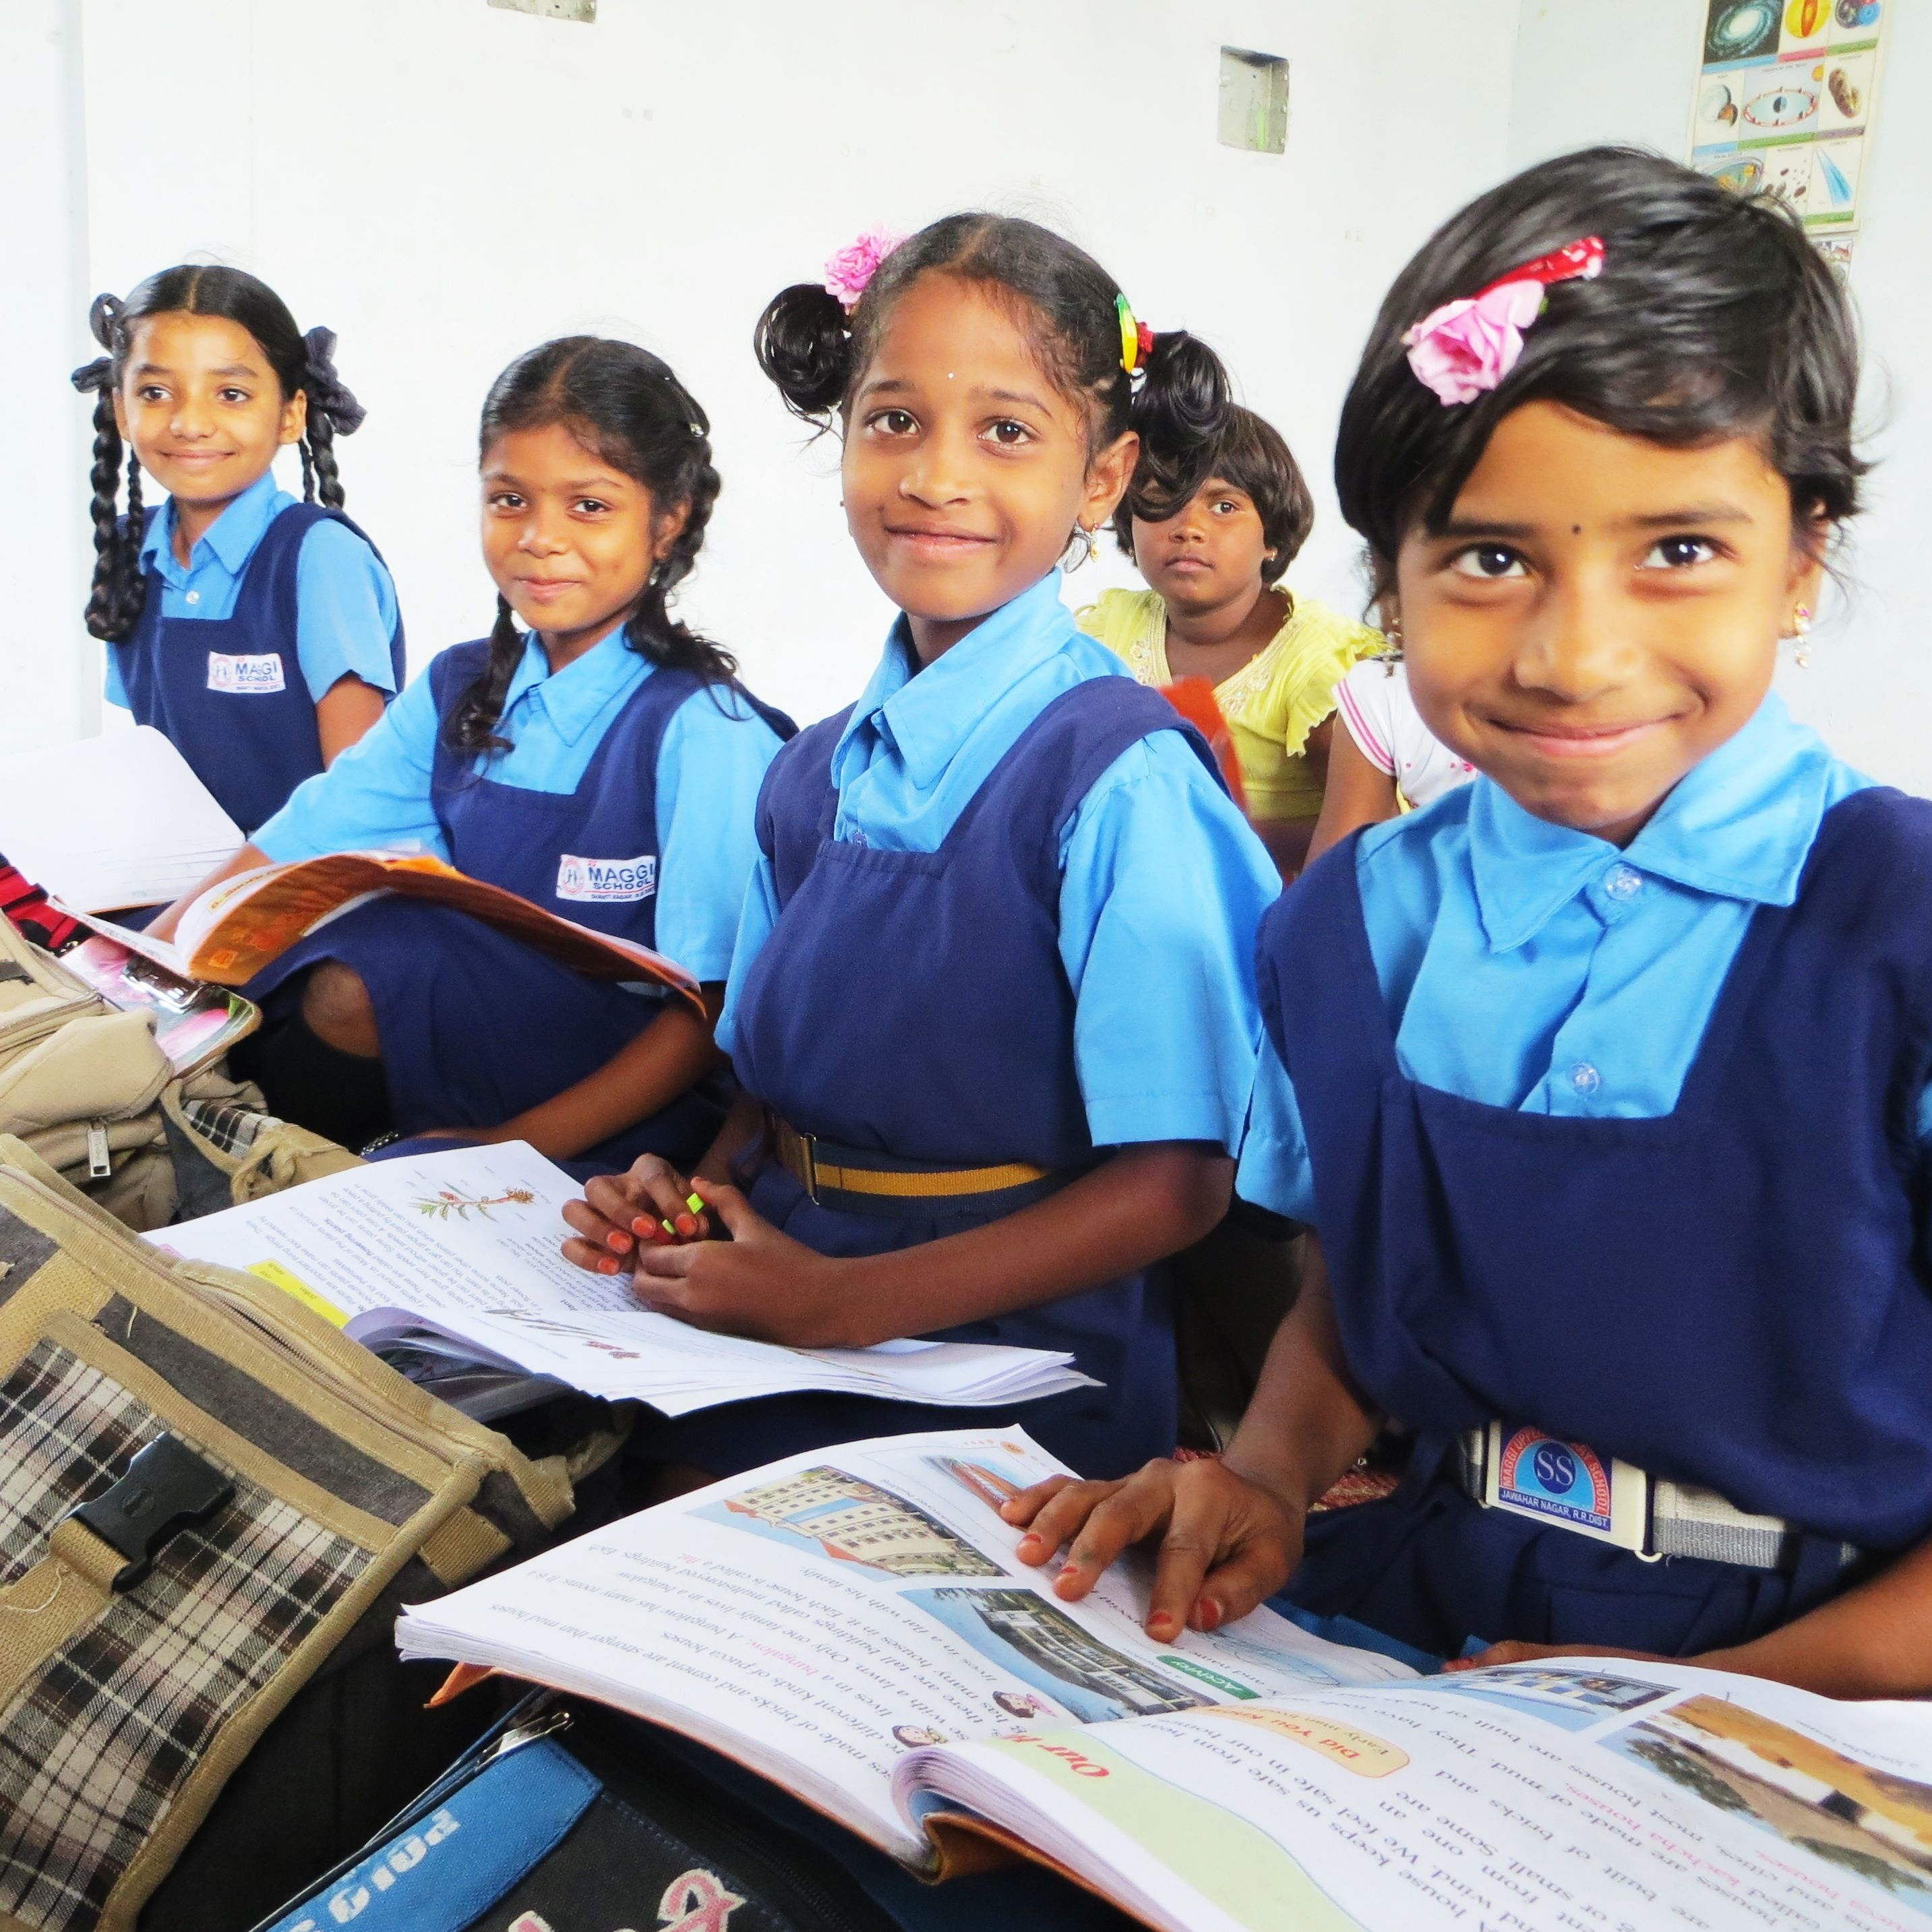 Girls Rescued From Child Labor Situations In The Slums Of Hyderabad, India  Are Now Enrolled